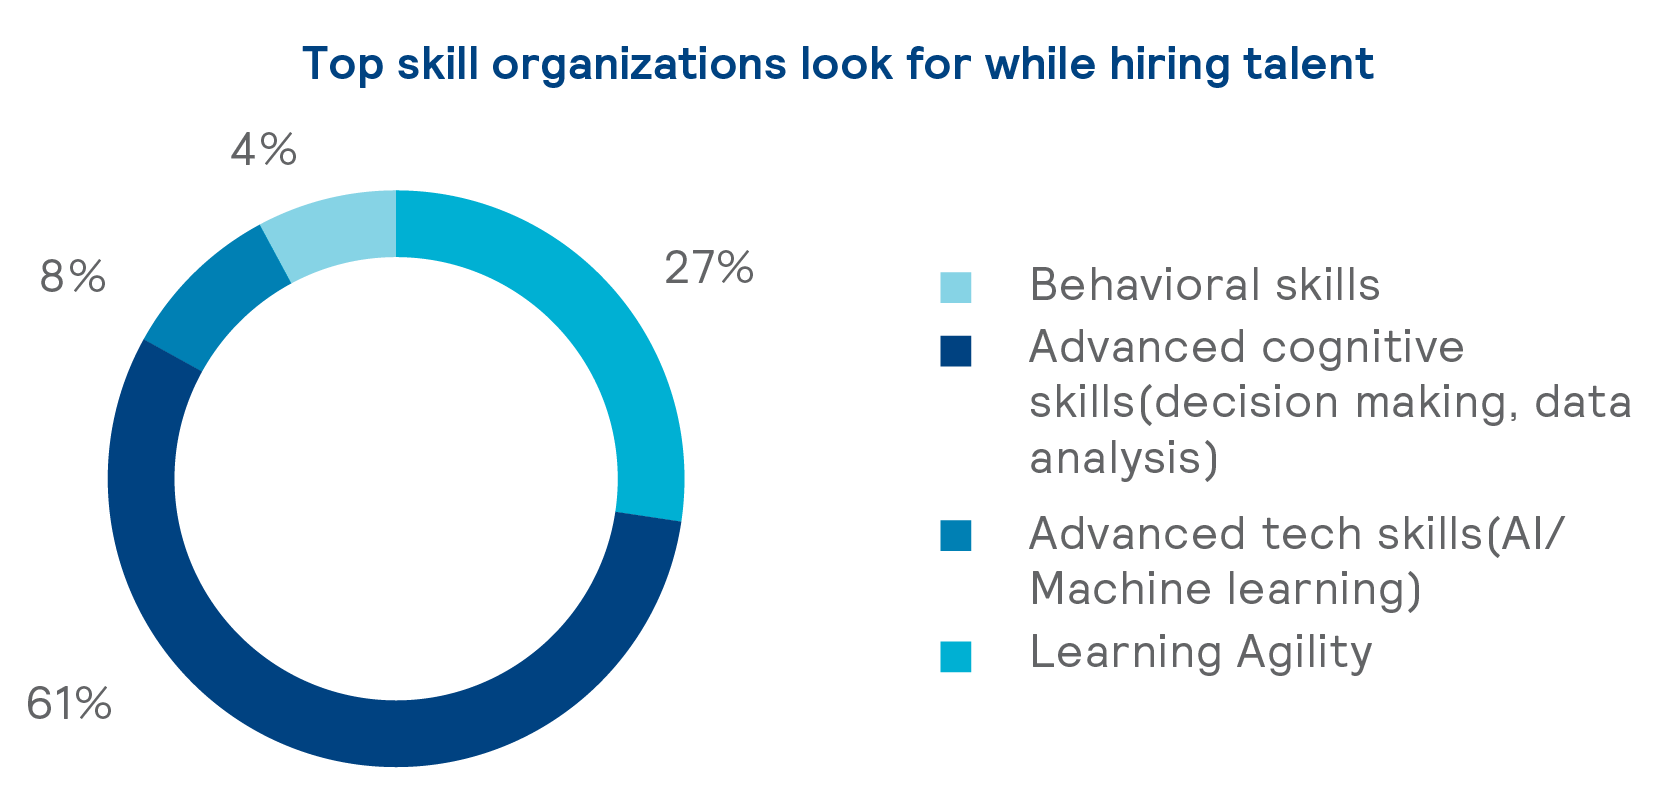 top_skill_organizations_look_for_while_hiring_talent_how_to_recruit_the_top_talent